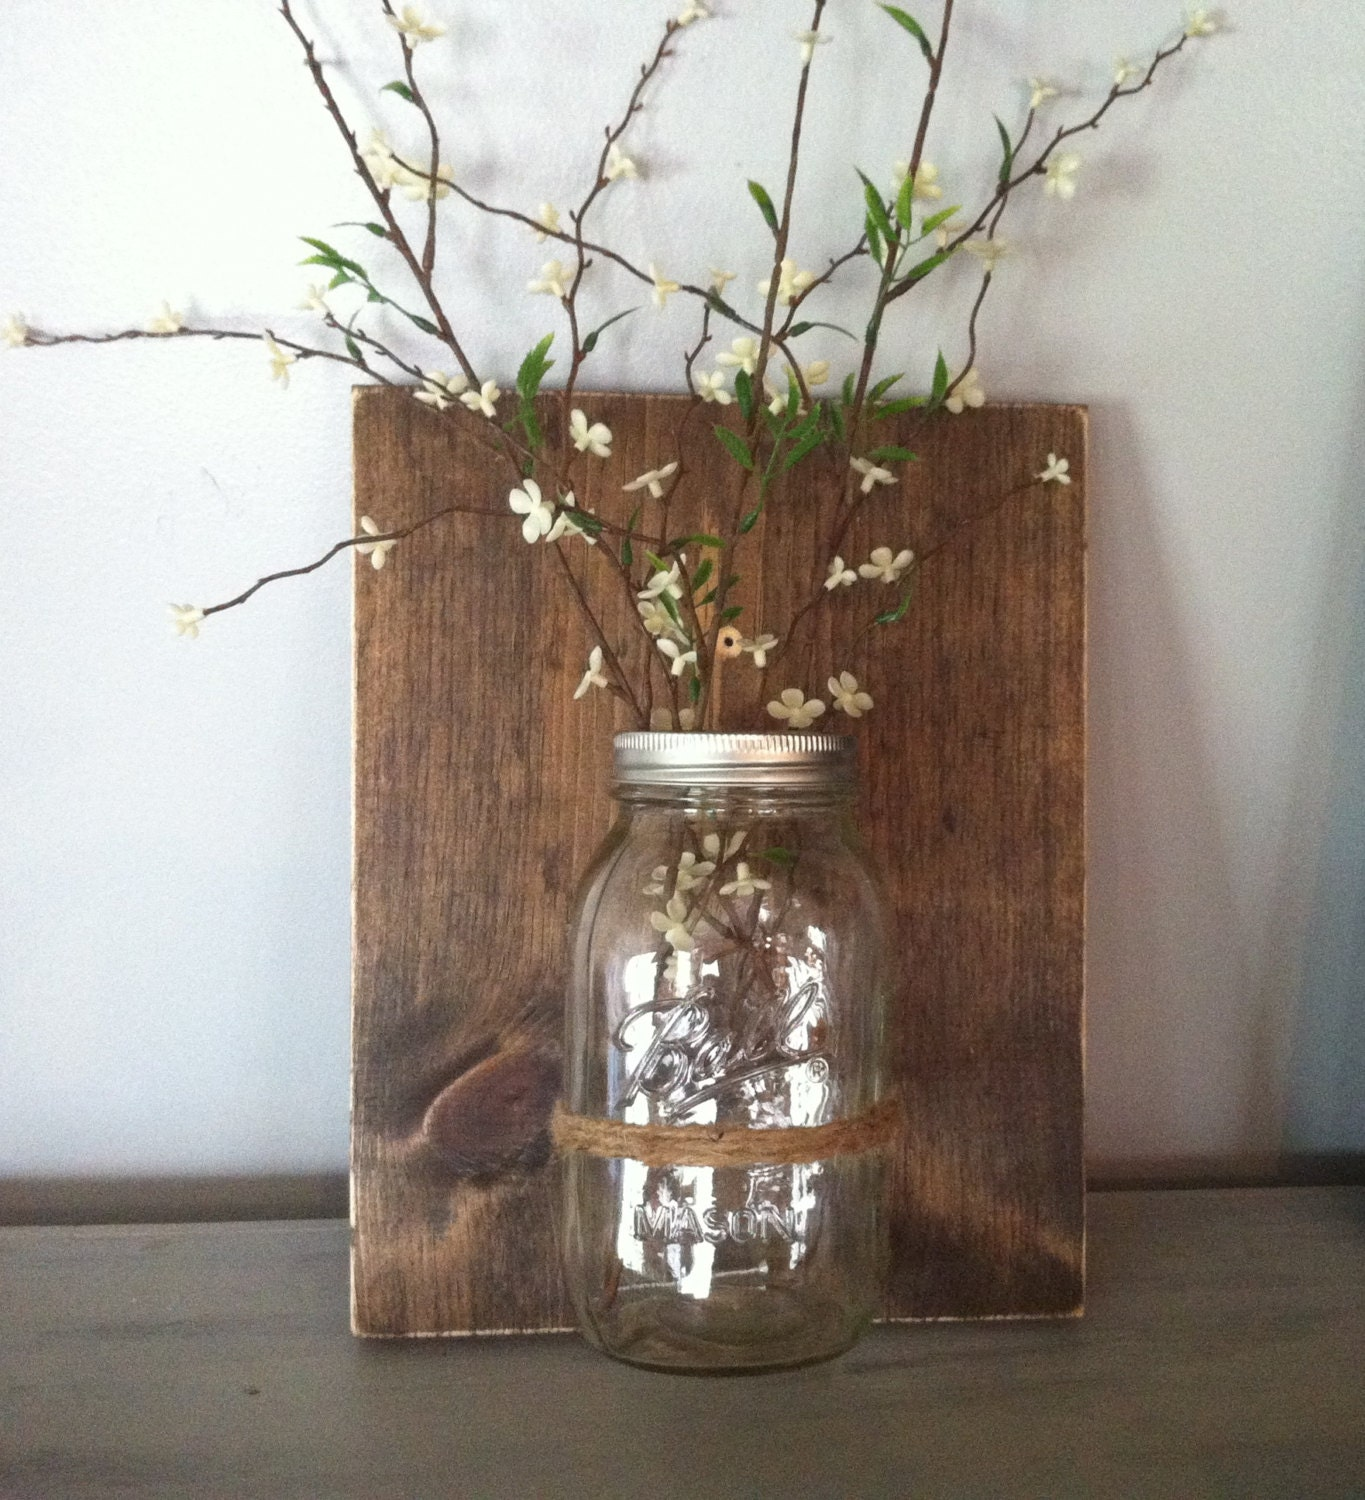 Mason Jar Wall Decor How To : Mason jar wall decor reclaimed wood ball vase